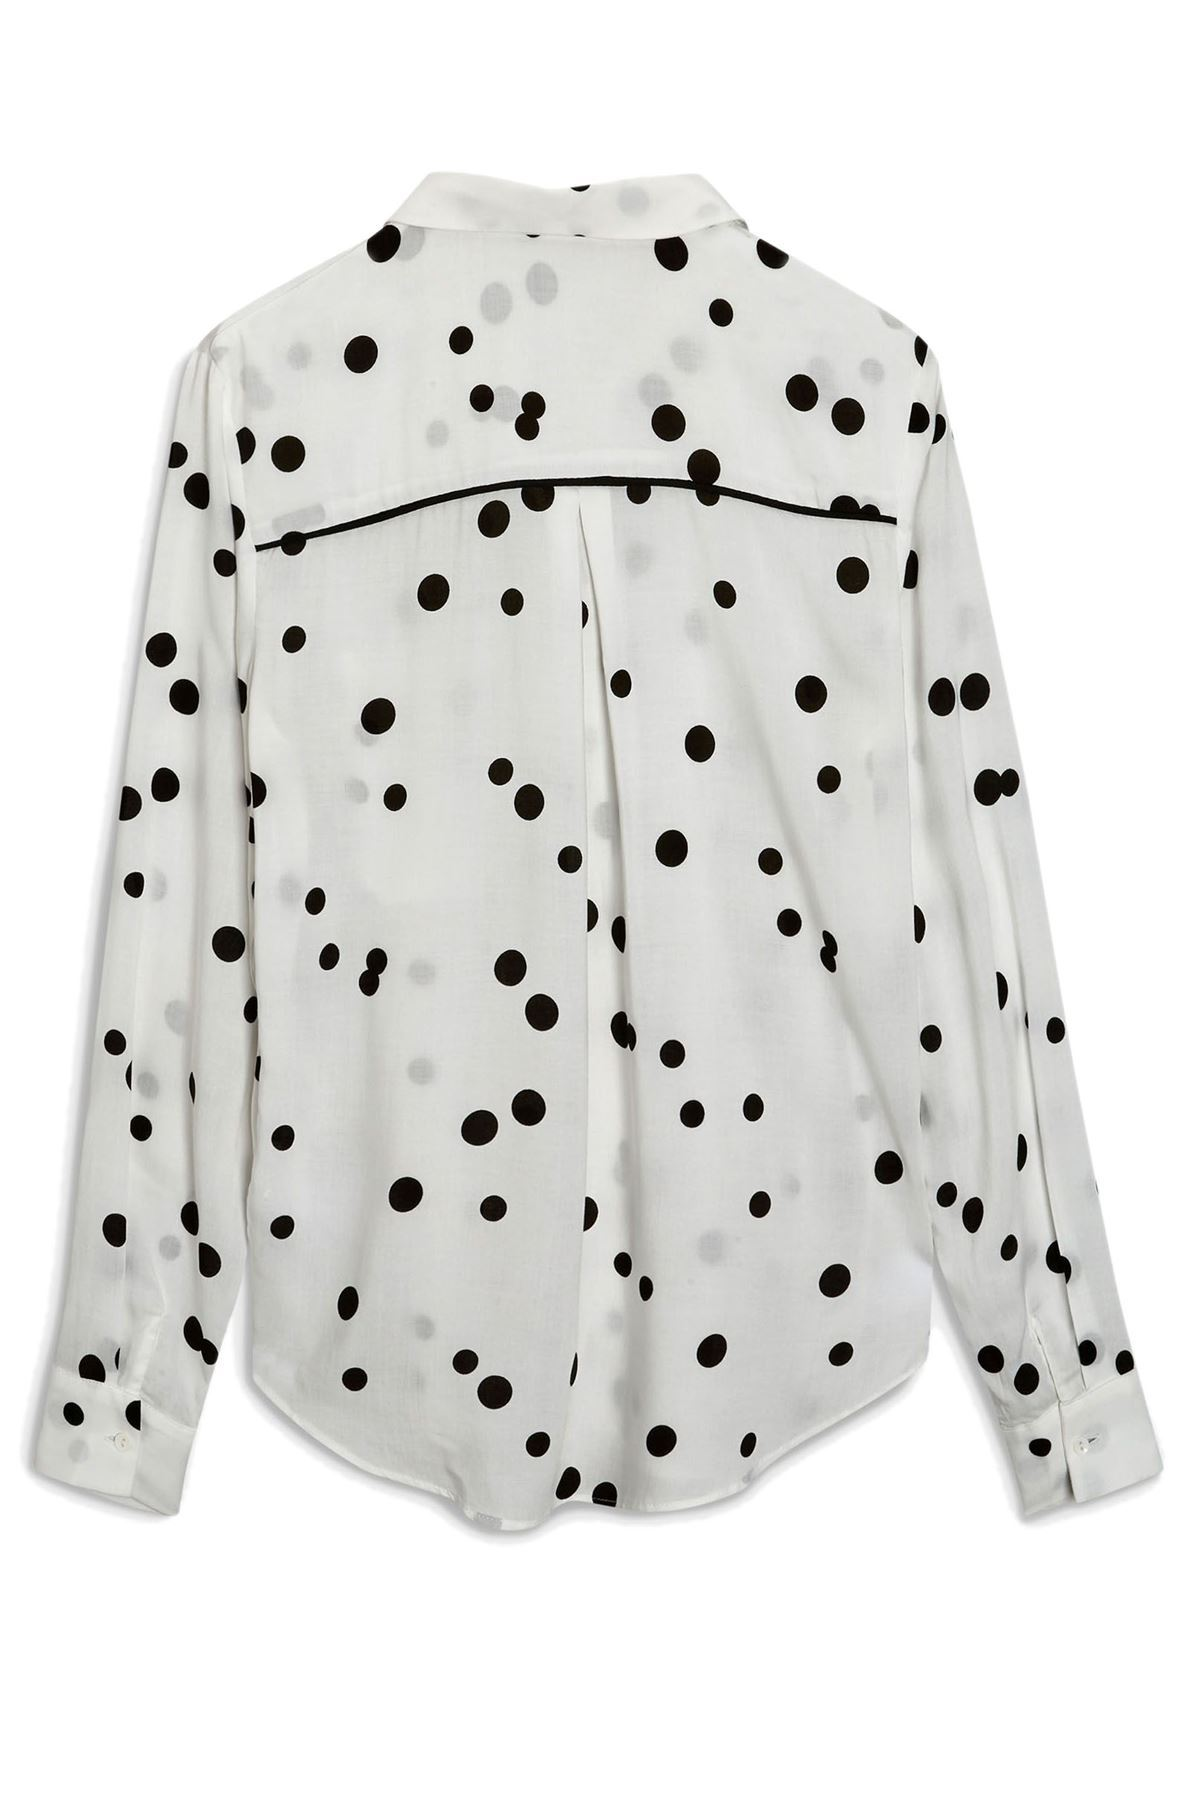 NEXT-Black-White-Spotted-Long-Sleeve-Silky-Shirt-Blouse-SALE-Was-24 thumbnail 17